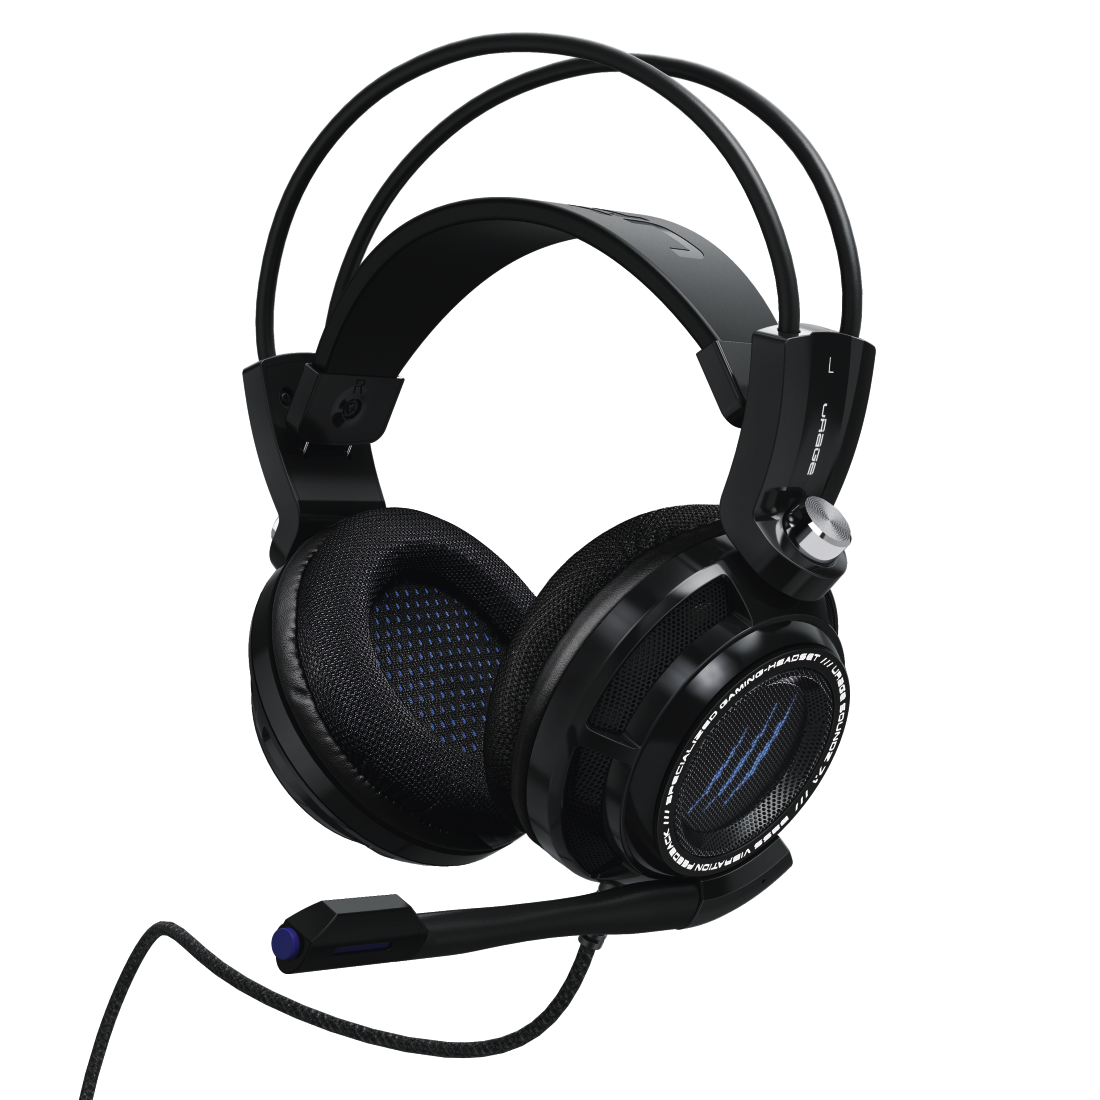 abx8 High-Res Image 8 - Hama, uRage SoundZ 7.1 Gaming Headset, black